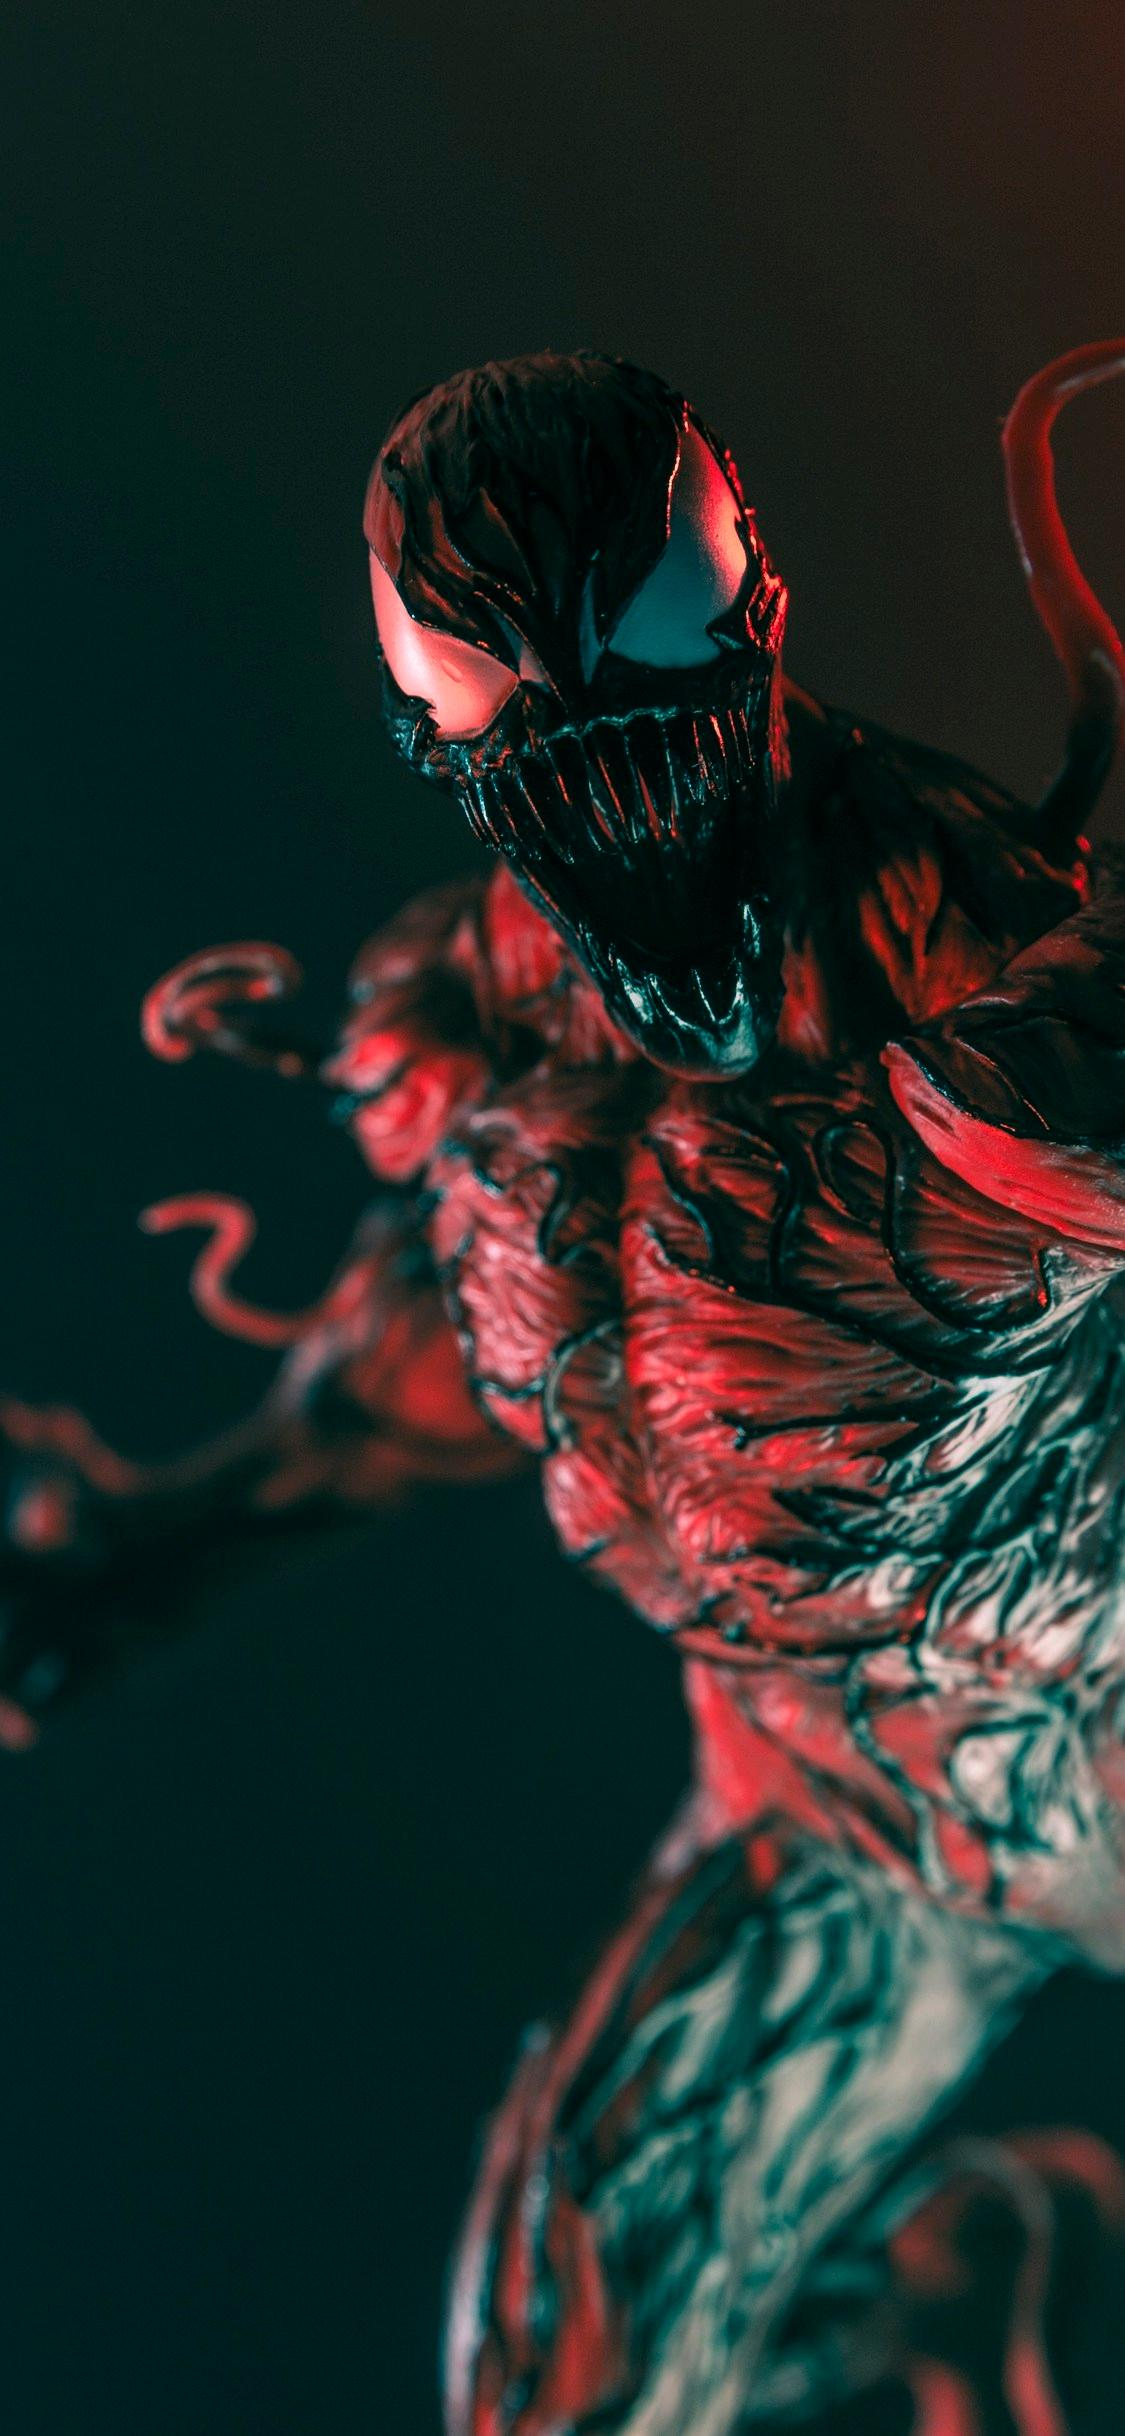 Download Carnage Wallpaper 4k Hd Backgrounds Download Itl Cat